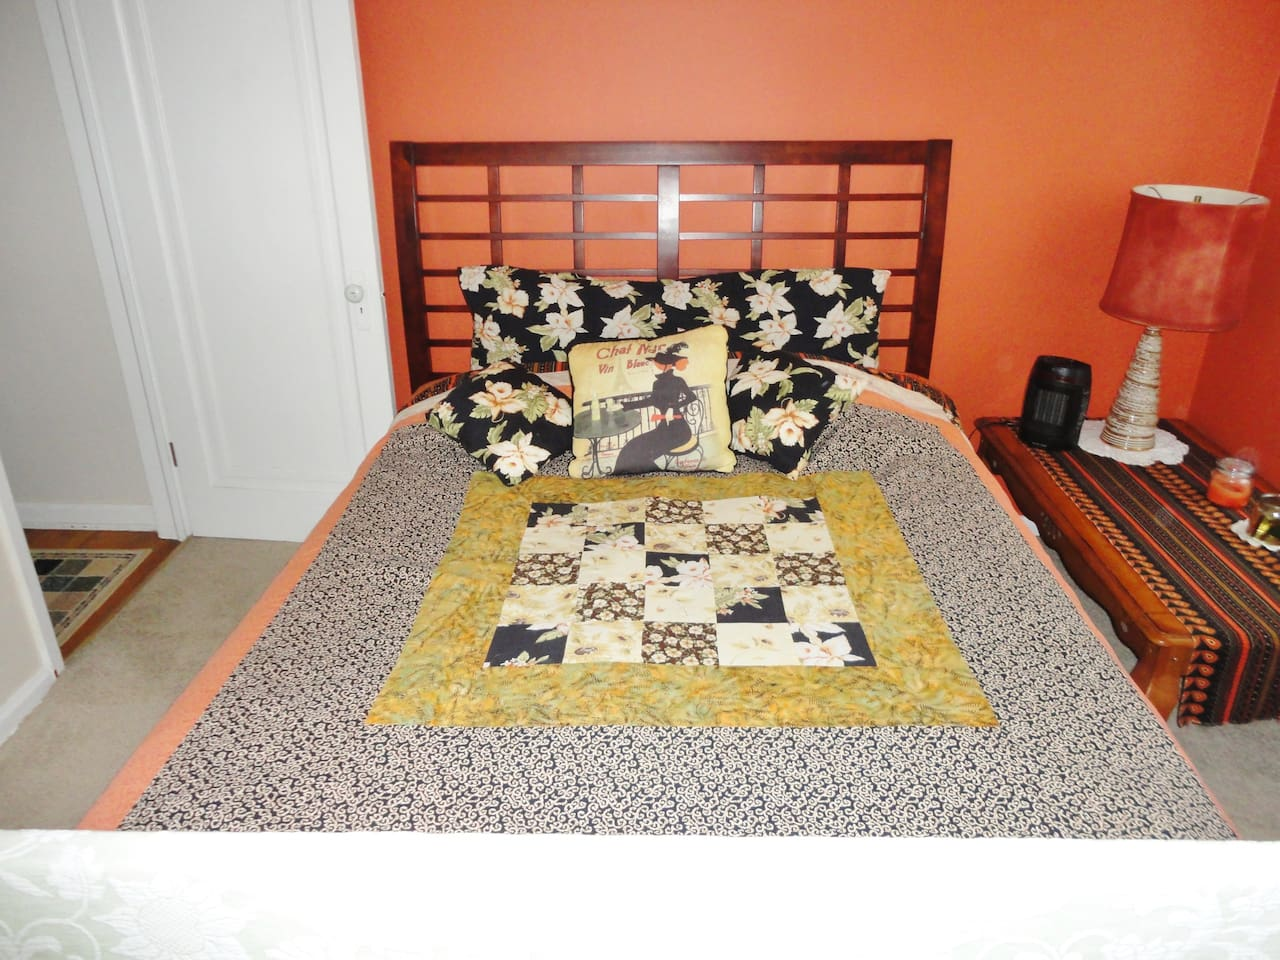 Queen bed, bright room with 2 windows, central AC and heat